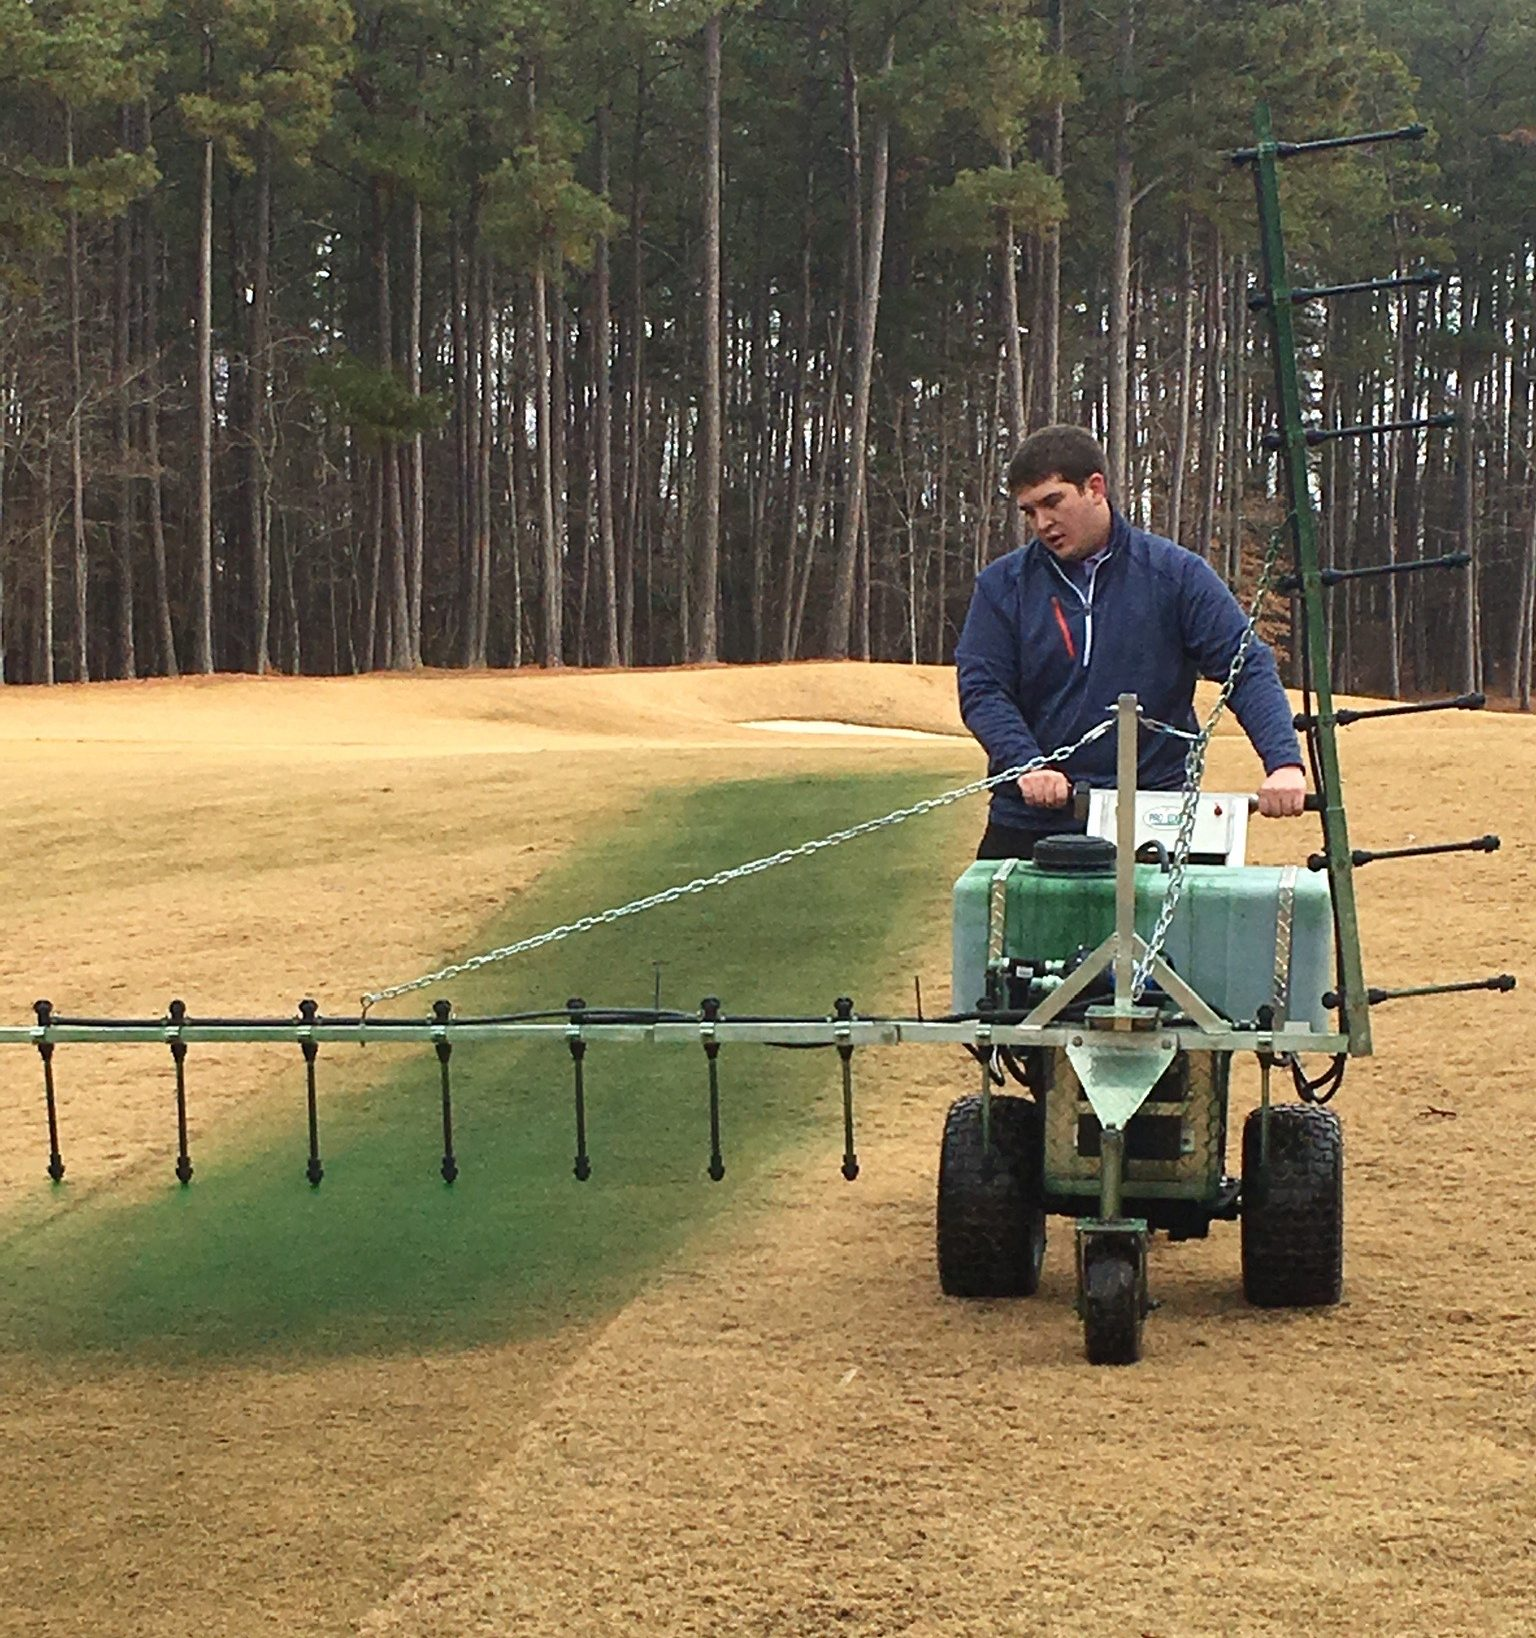 NC State Student managing turfgrass spray program